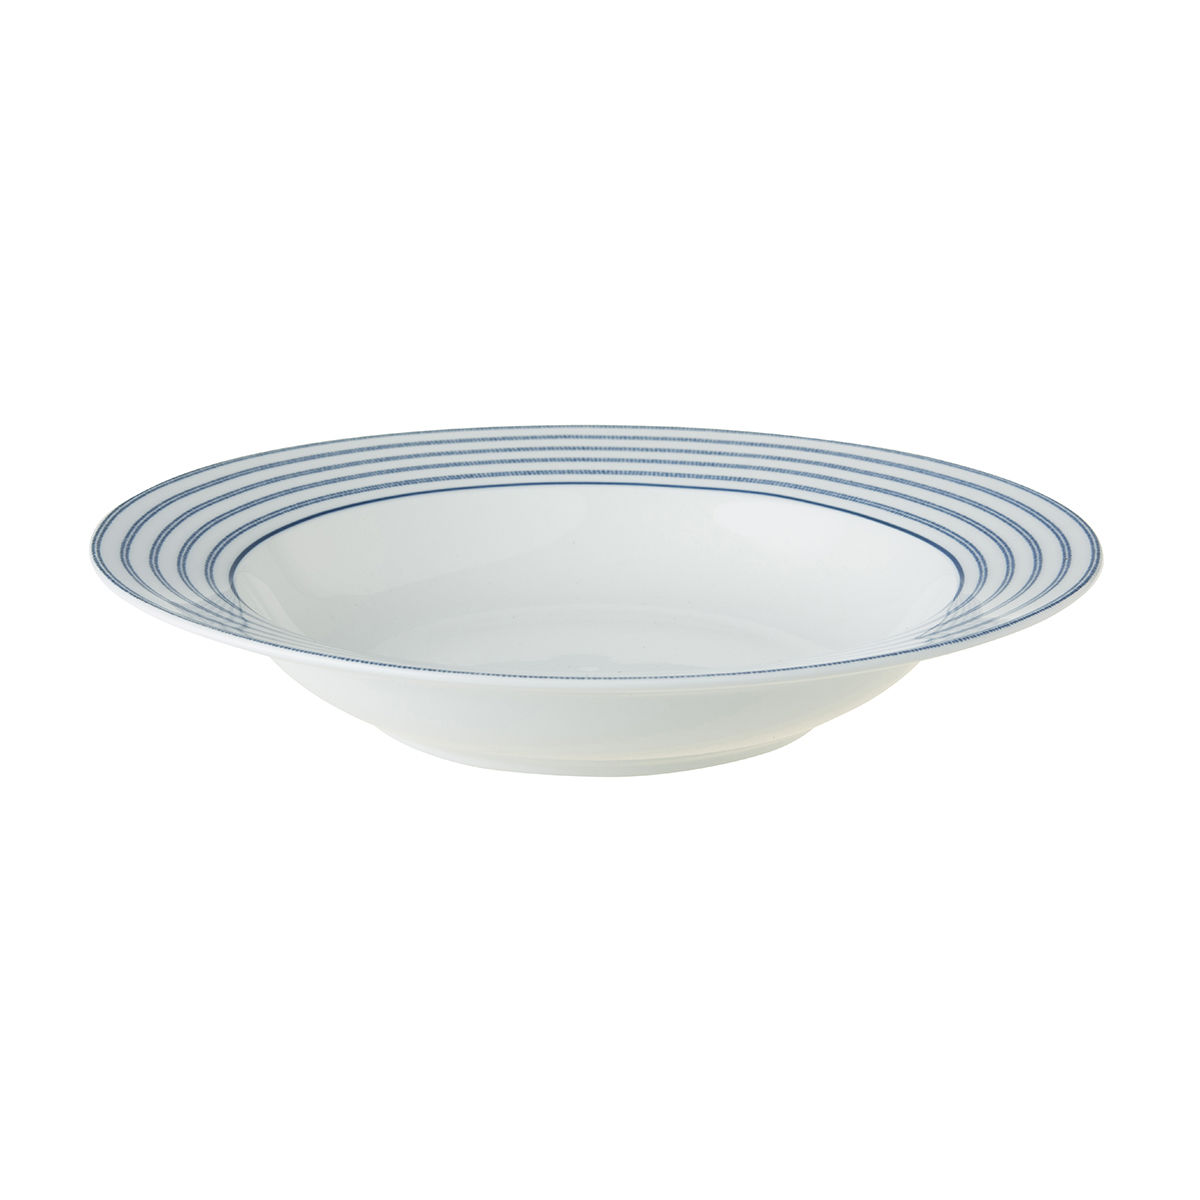 "Laura Ashley 8.4"" Deep Plate Candy Stripe - product images  of"